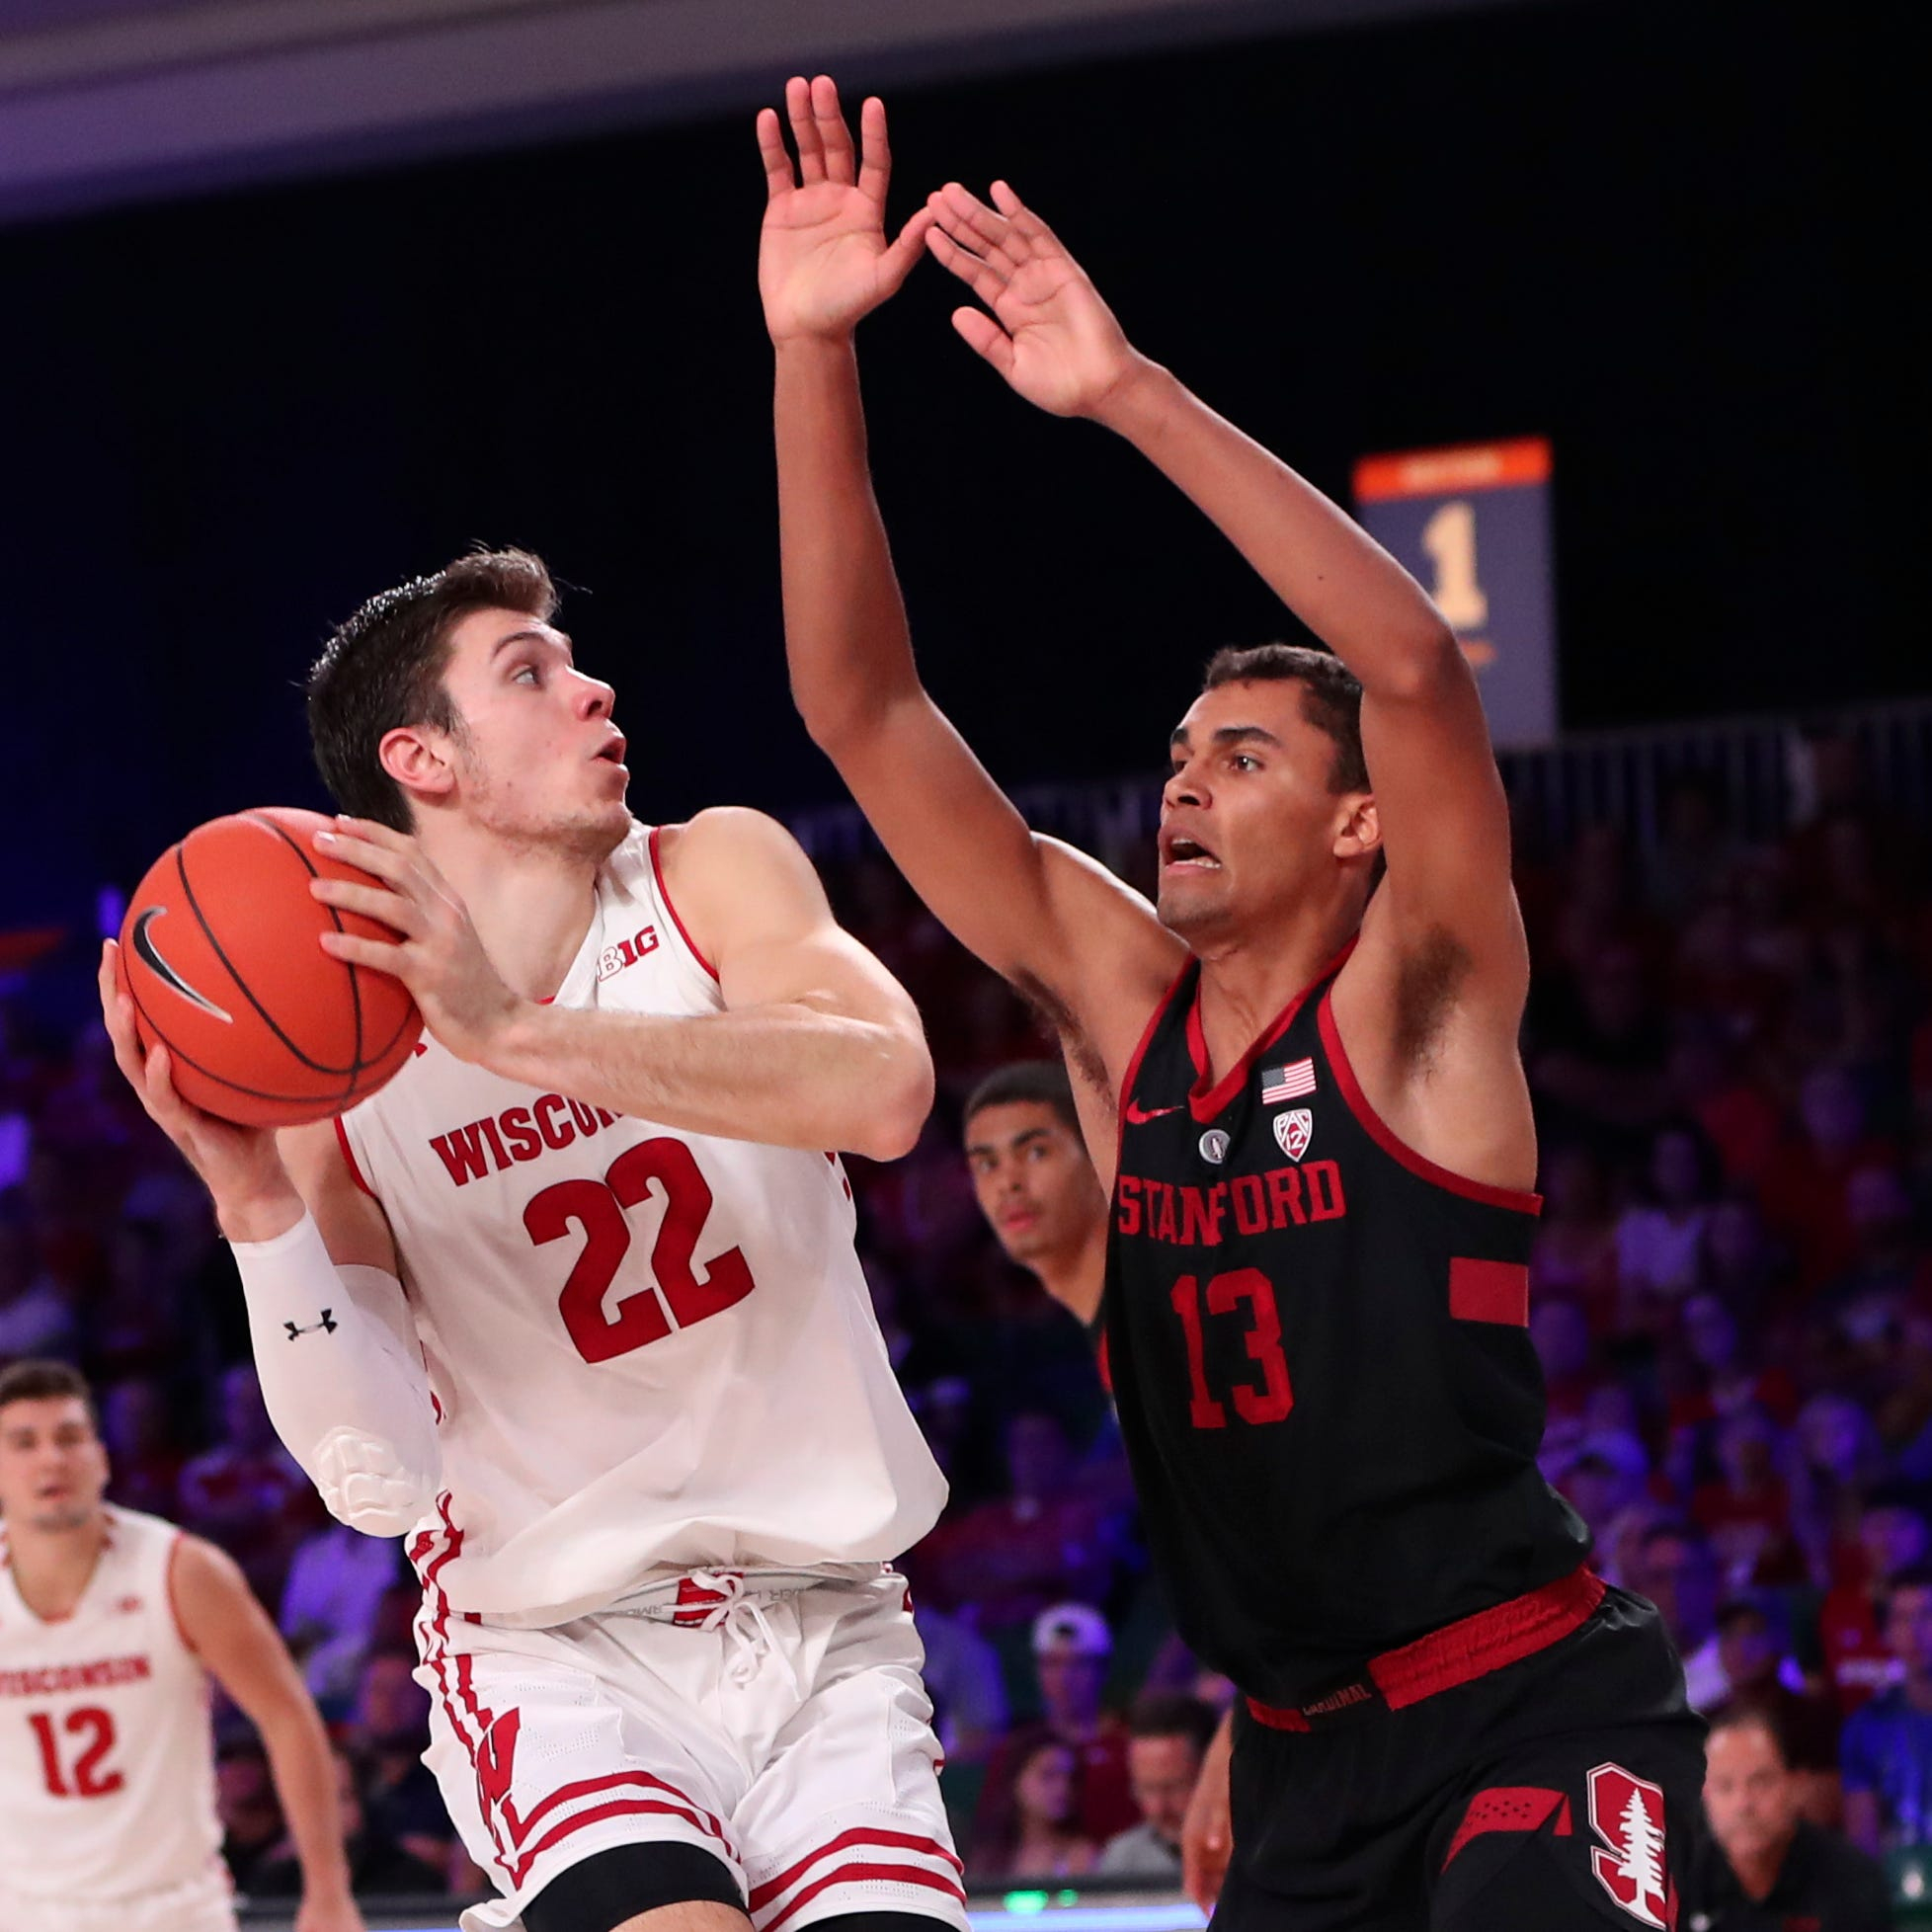 UW 62, Stanford 46: Badgers pull away down the stretch in Battle 4 Atlantis opener